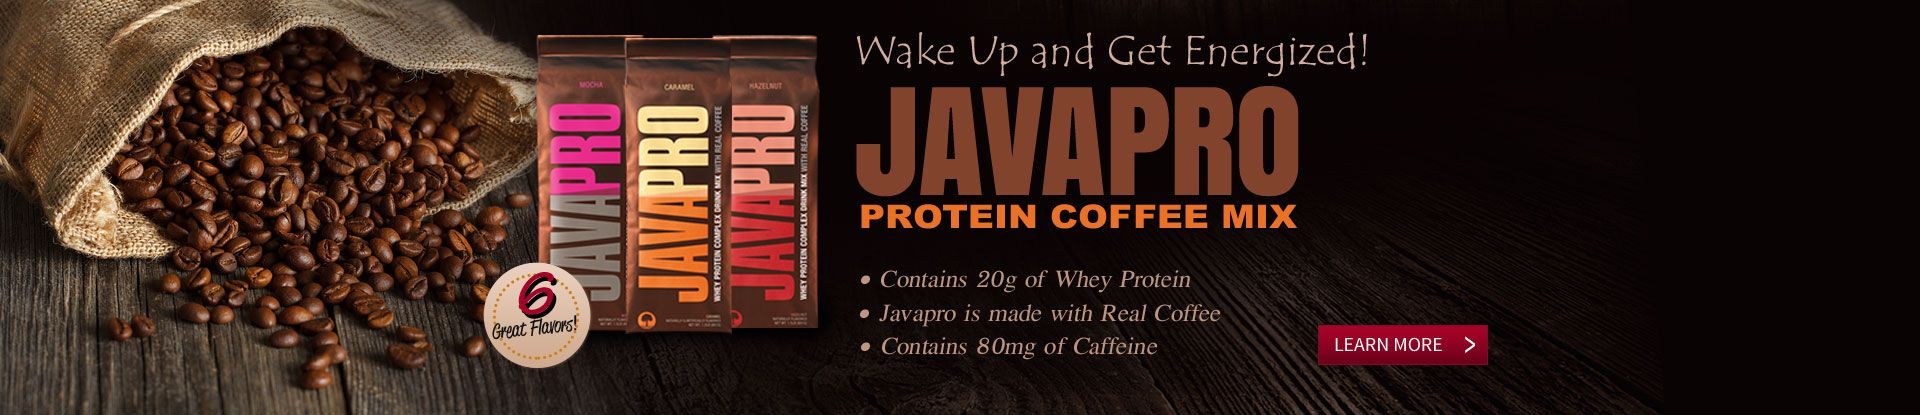 JavaPro Protein Coffee Mix